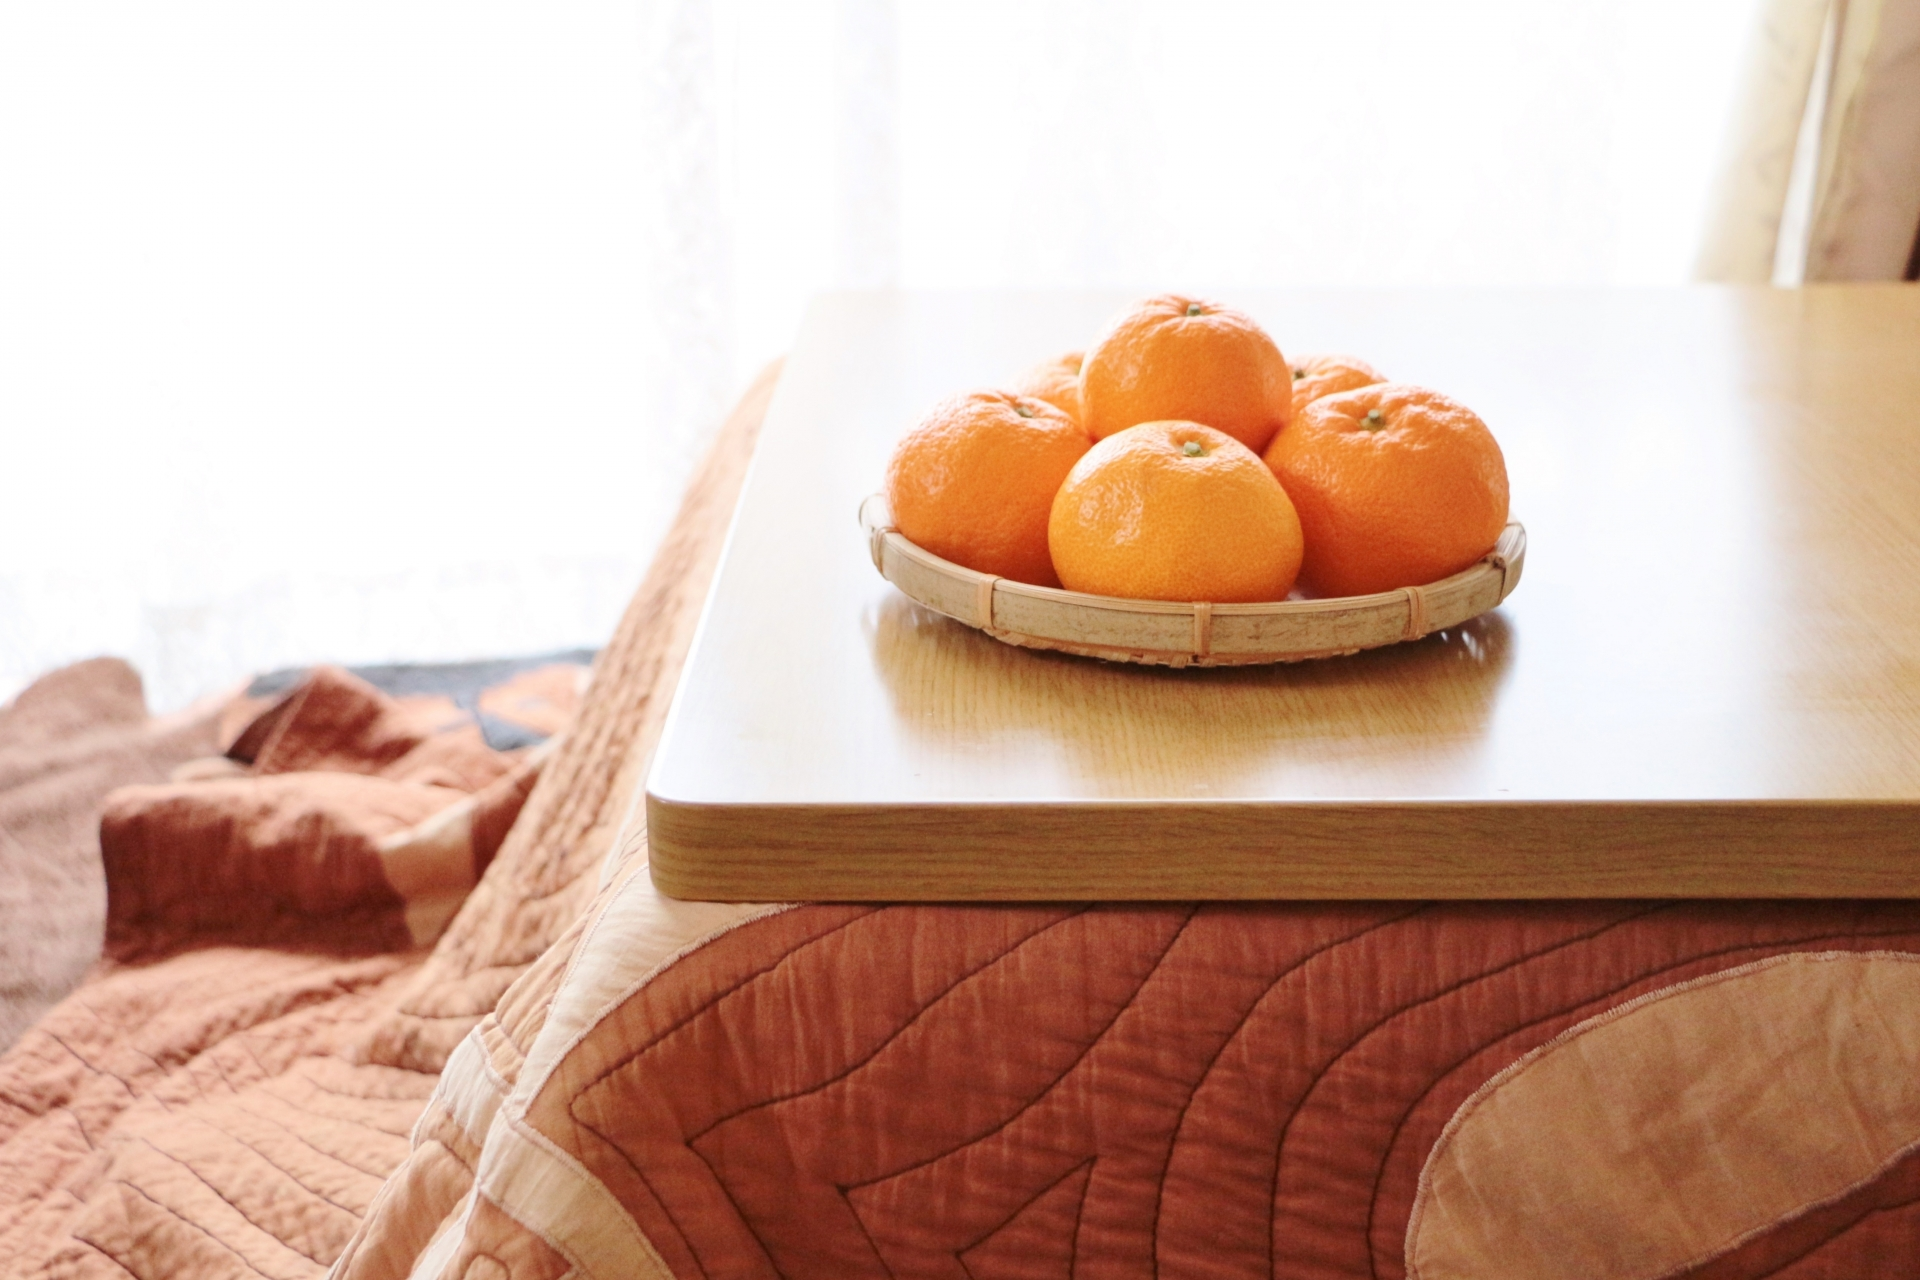 Kotatsu with Mandarins on it